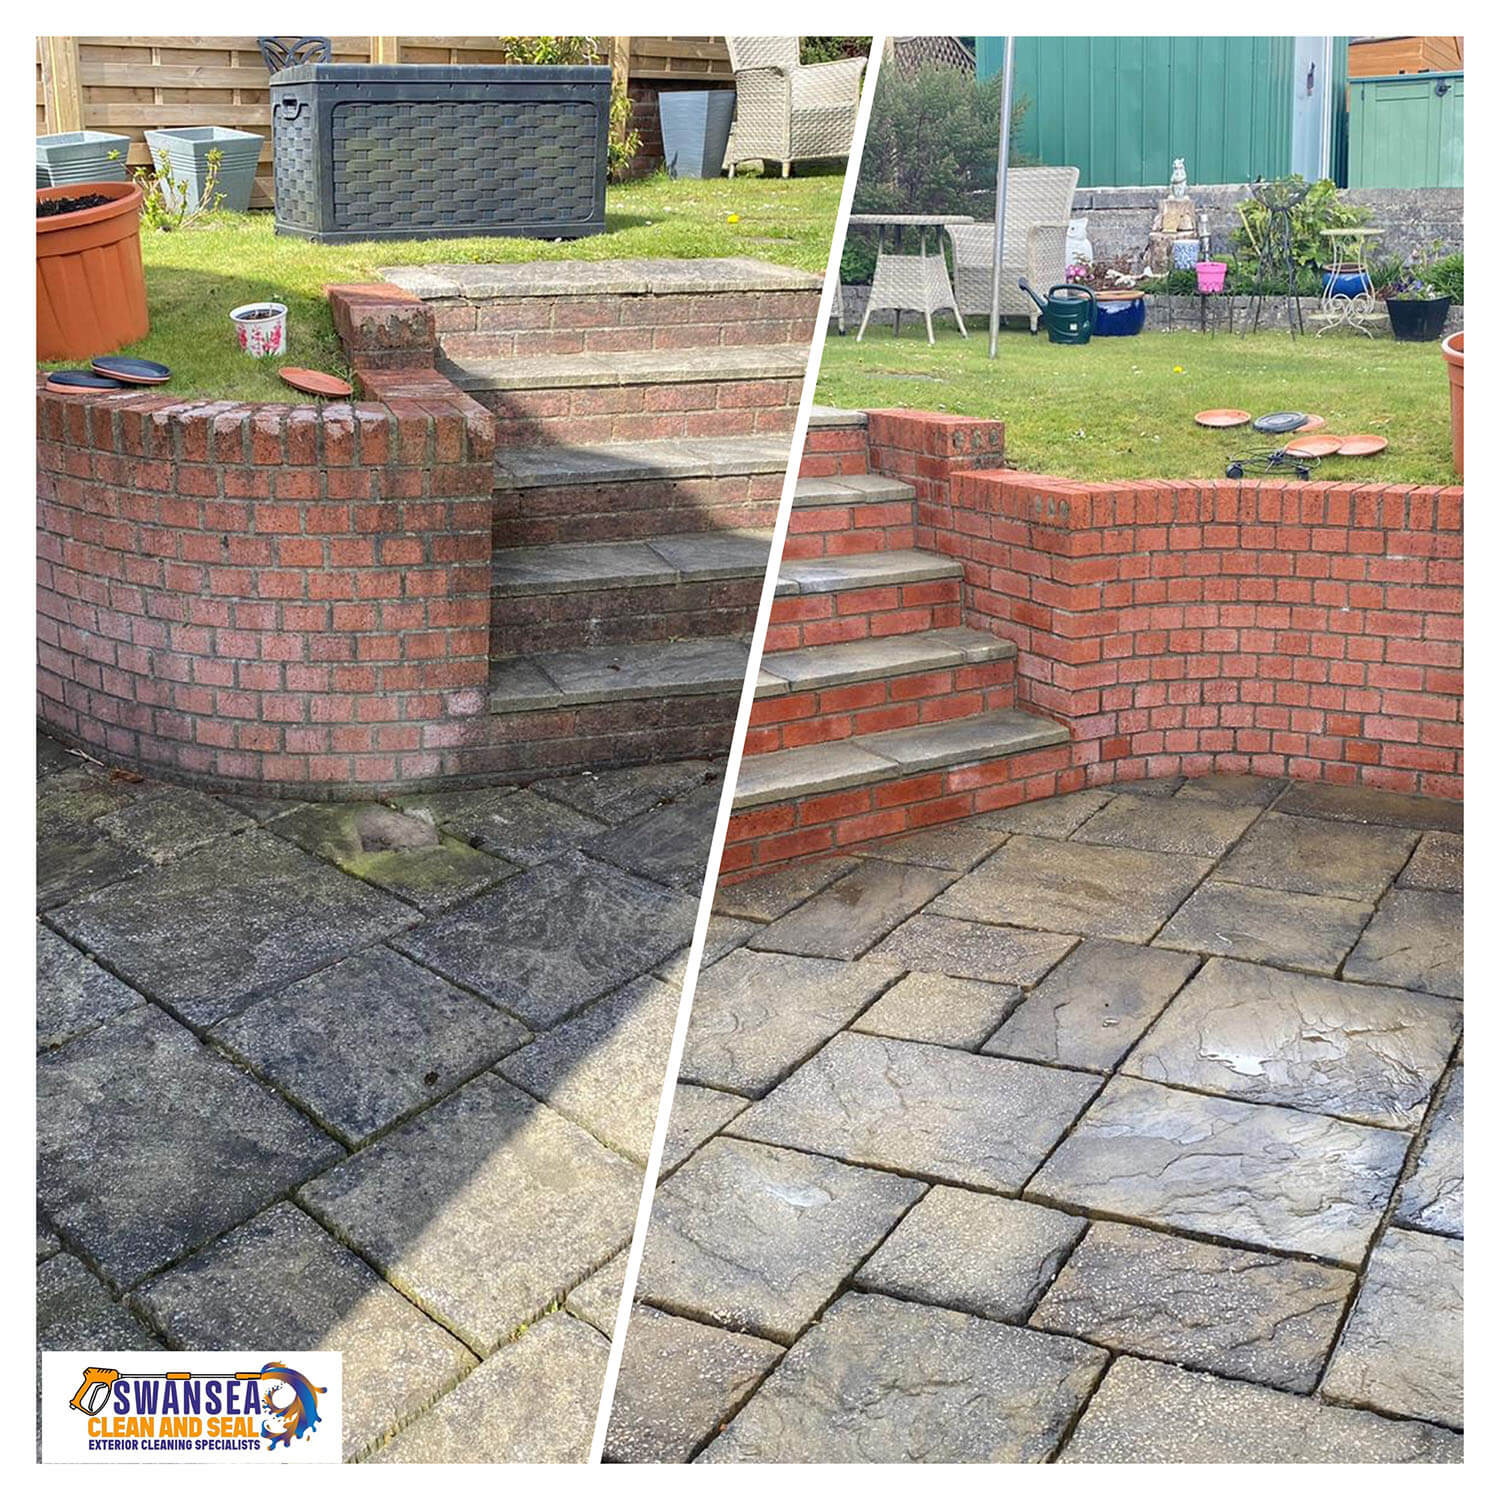 How a Driveway Sealing Swansea Service Will Keep Your Driveway Looking Like New